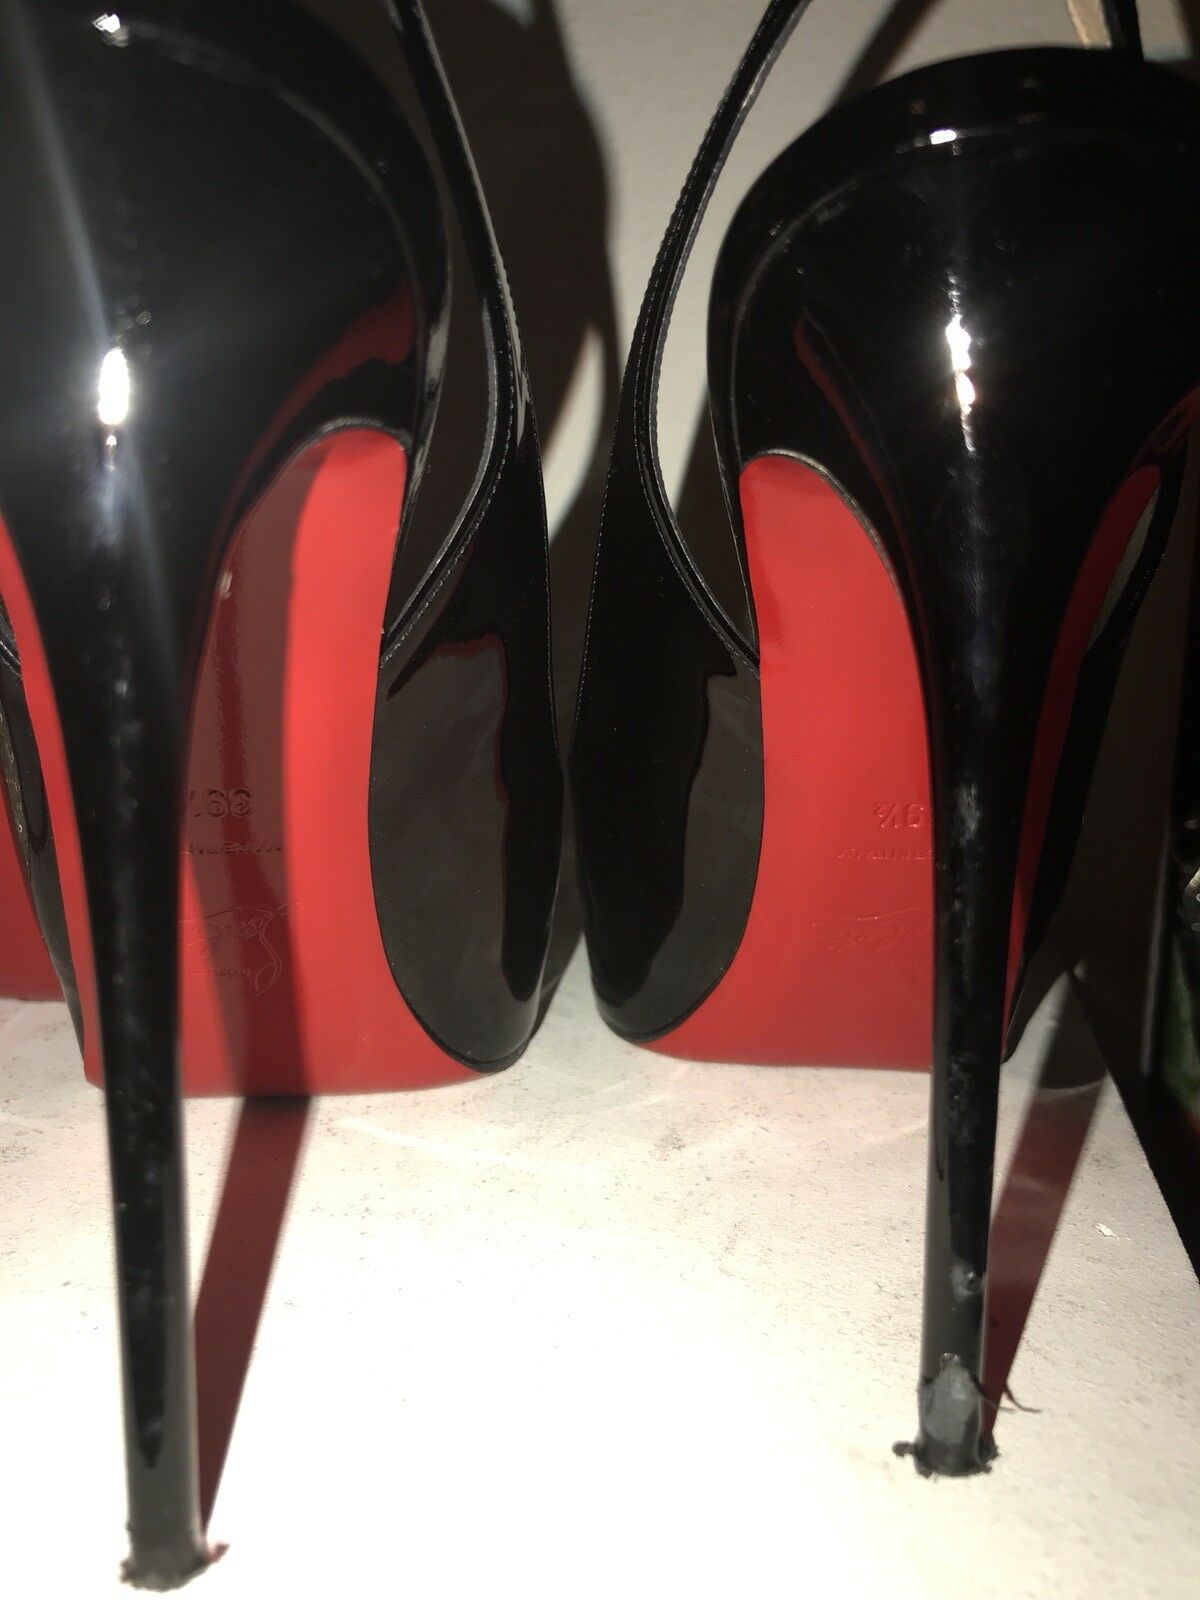 Christian Christian Christian Louboutin private number Peep Toe Heels Taille 39.5 85c307